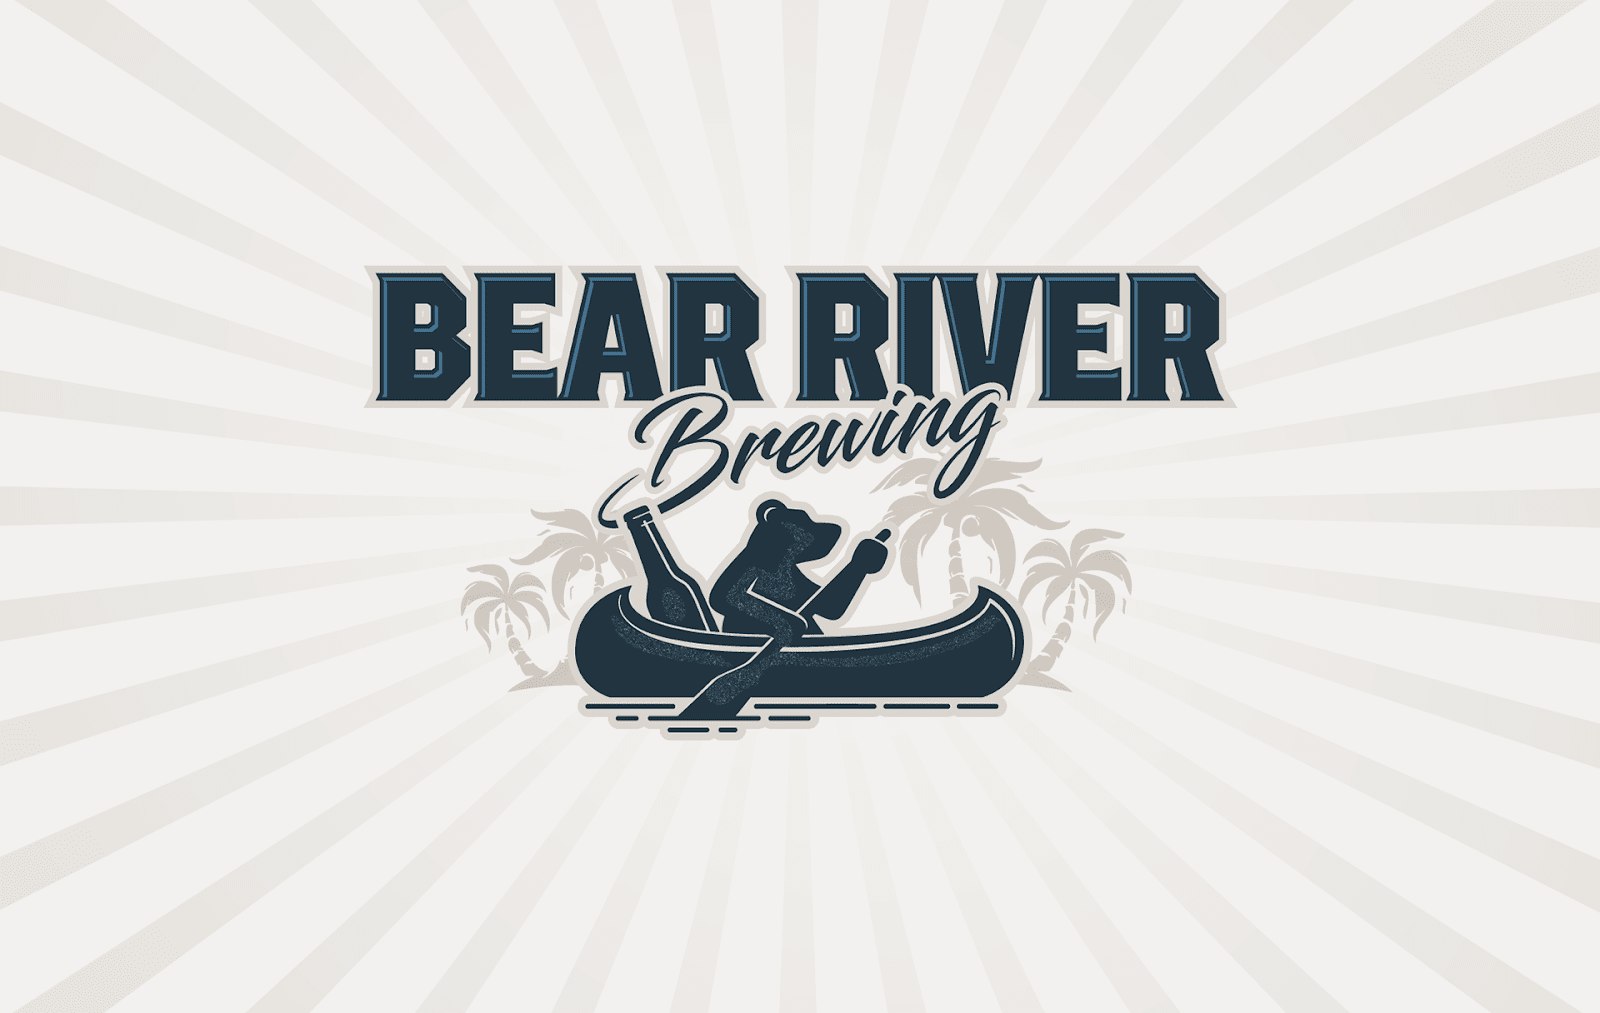 Bear River Brewing Branding 01 - Ach, tie obaly – Bear River Brewing